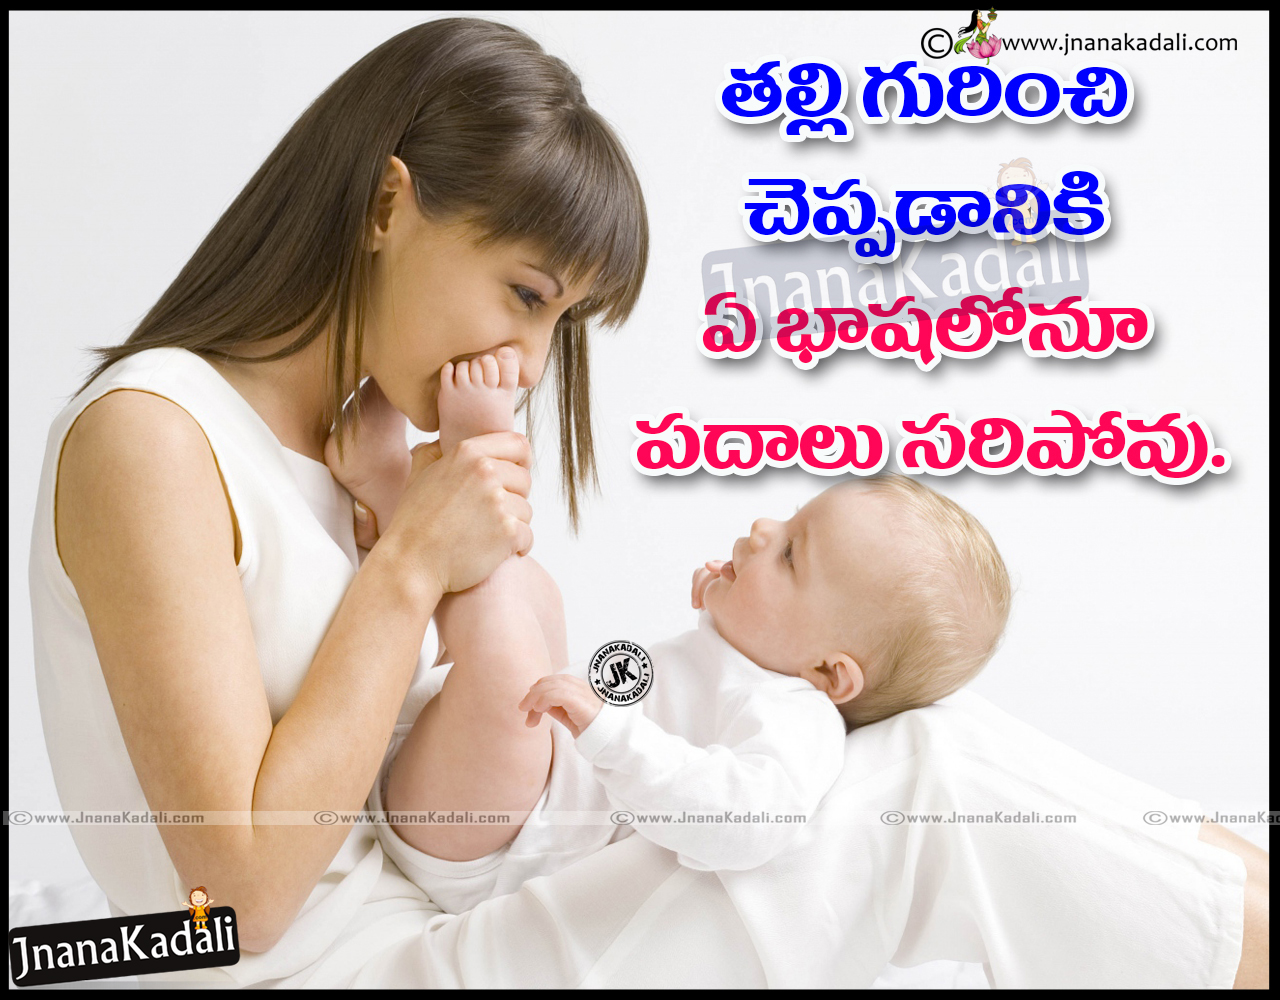 Here is a Top Telugu Amma Quotes and kavithalu Best Telugu Quotations on Mother